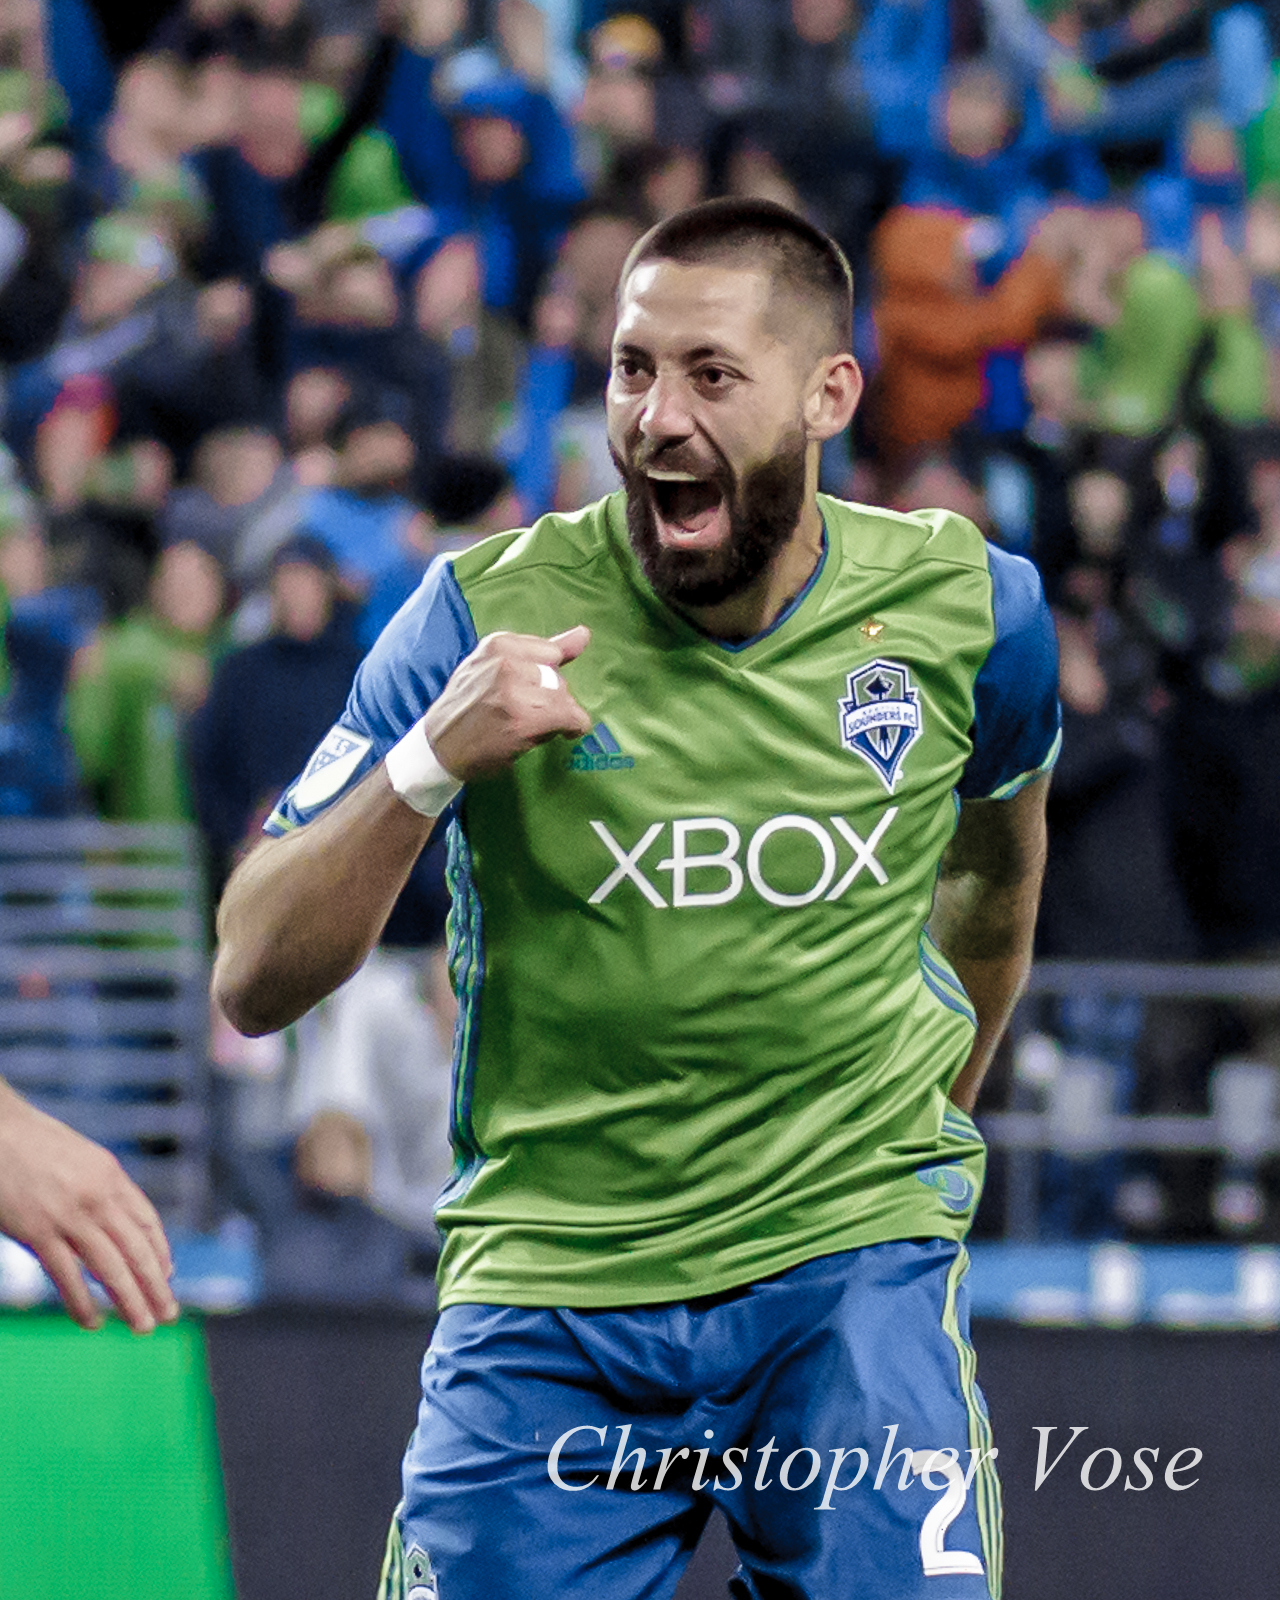 2017-11-02 Clint Dempsey's First Goal Celebration.jpg